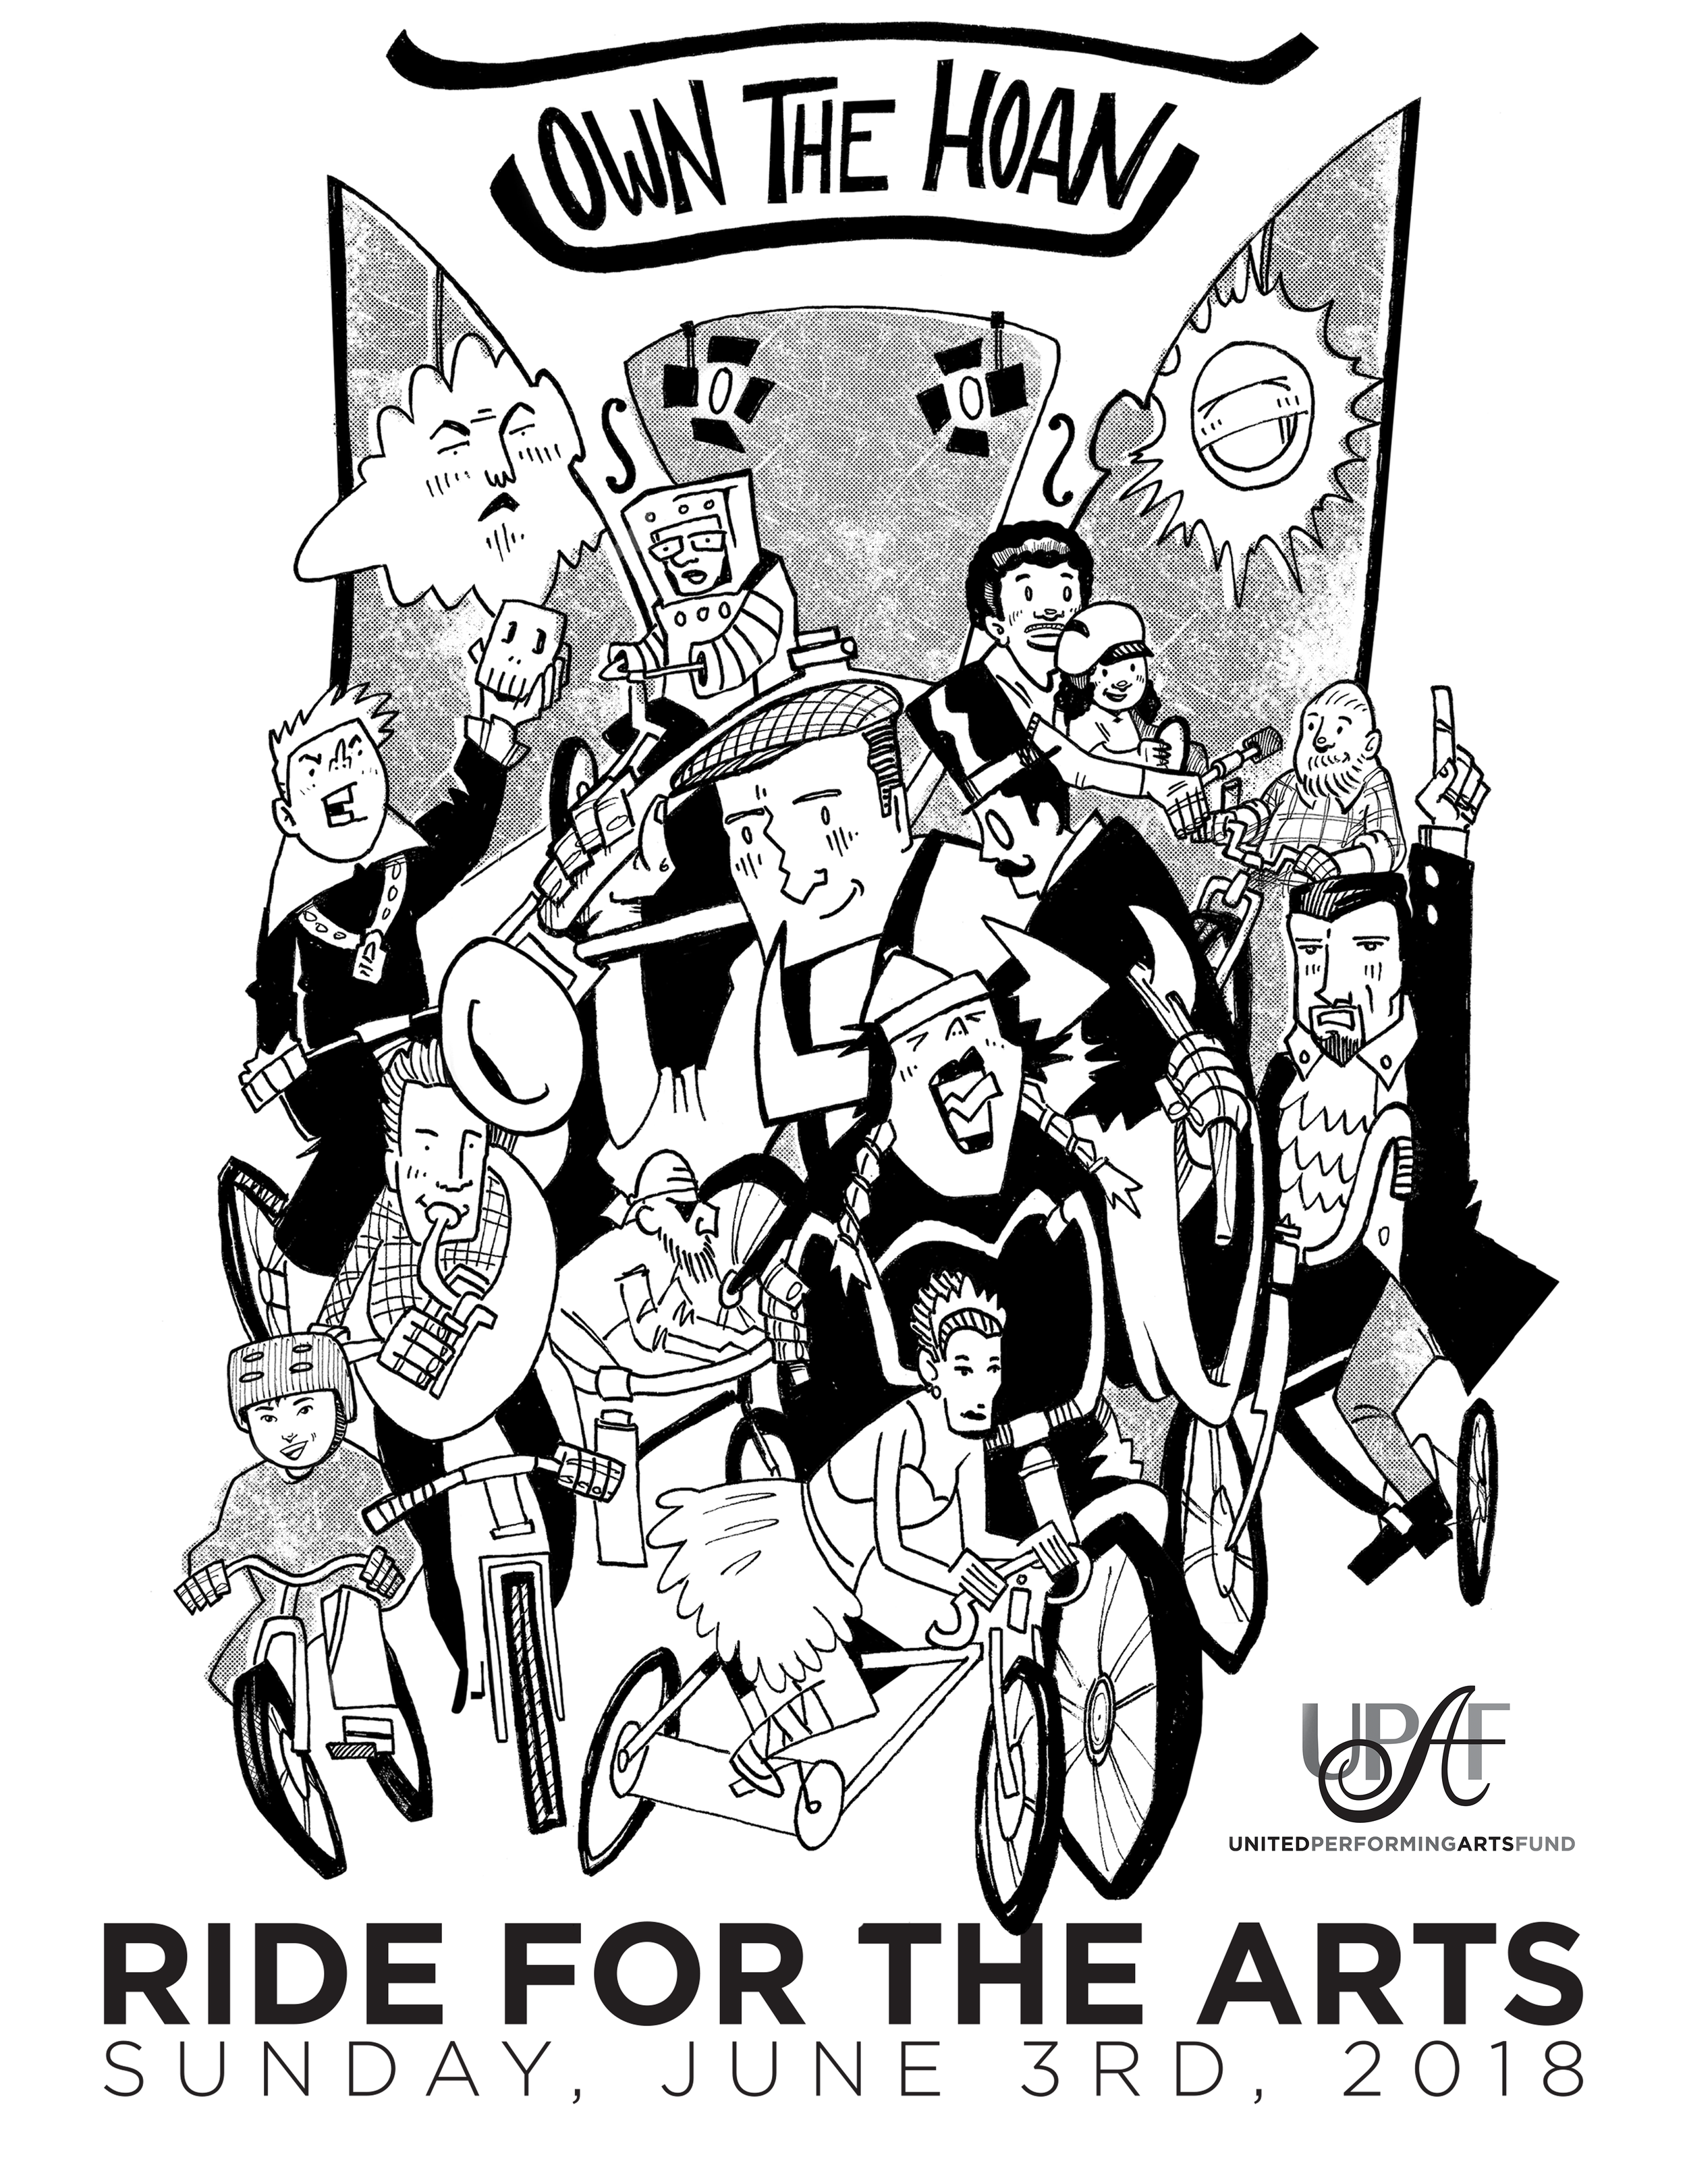 2018 UPAF Ride For The Arts T-Shirt Design